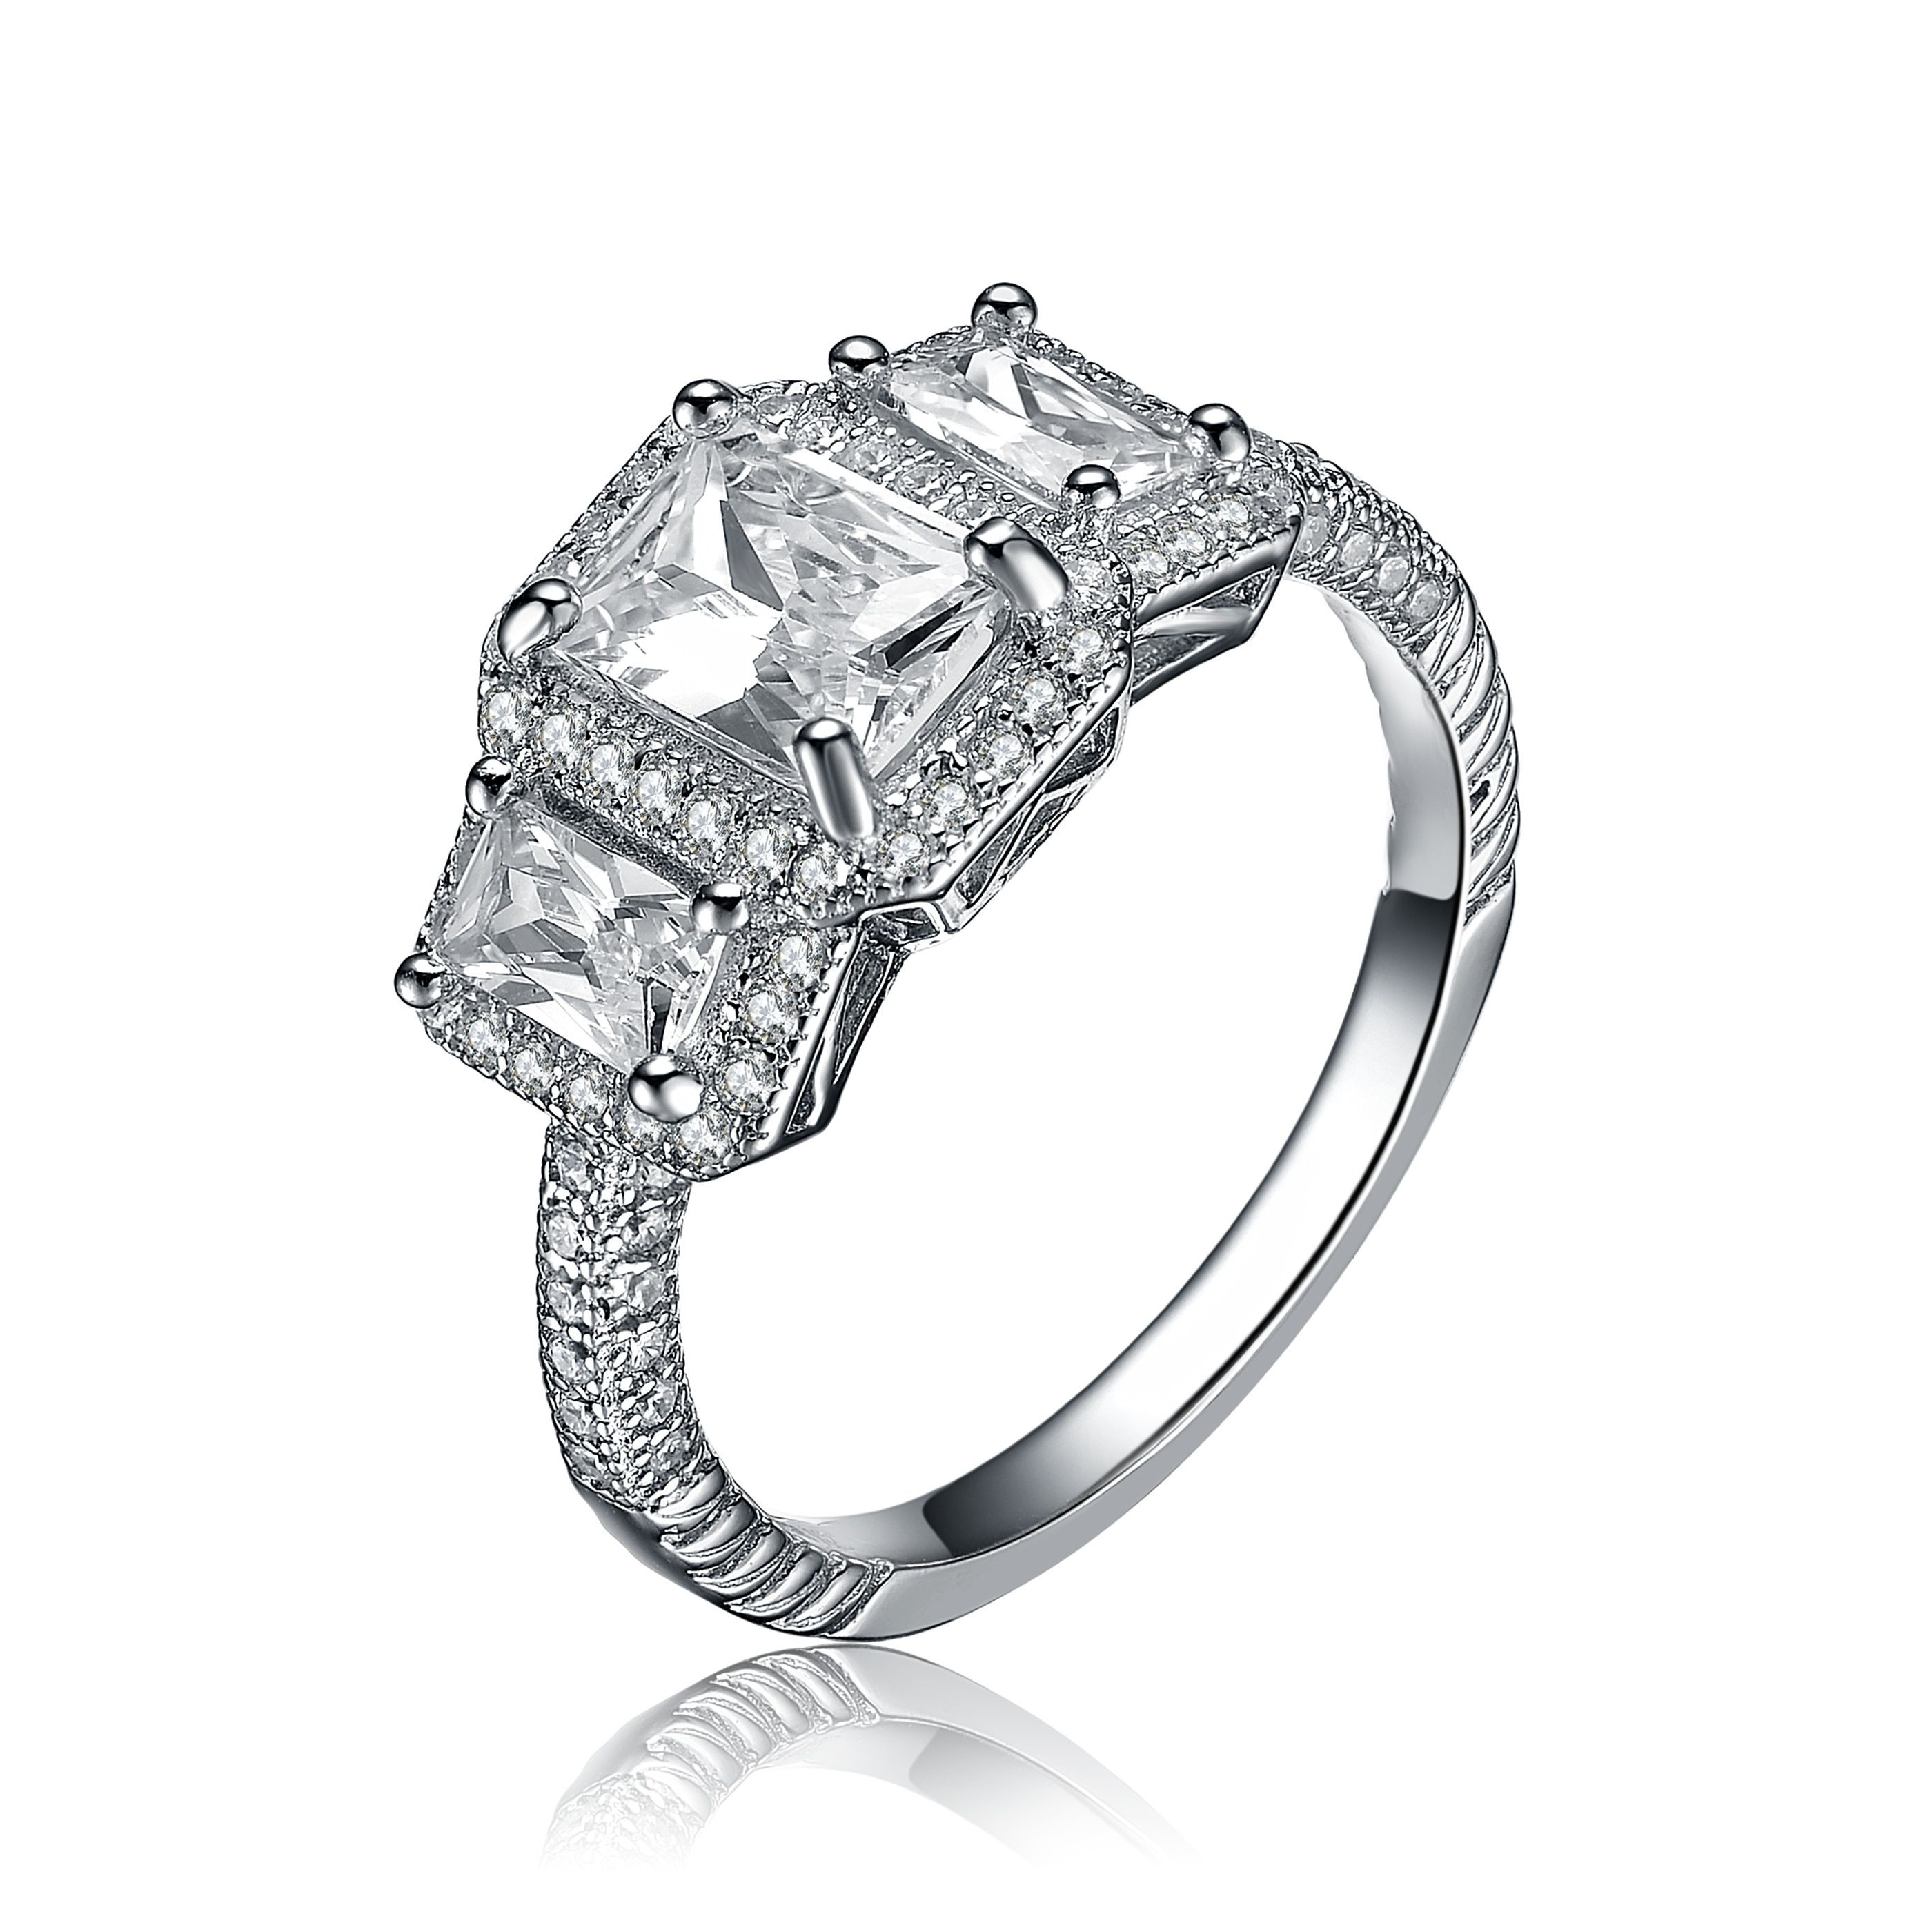 Collette Z Sterling Silver Emerald Cut Cubic Zirconia Ring (Size 8), Women's, White